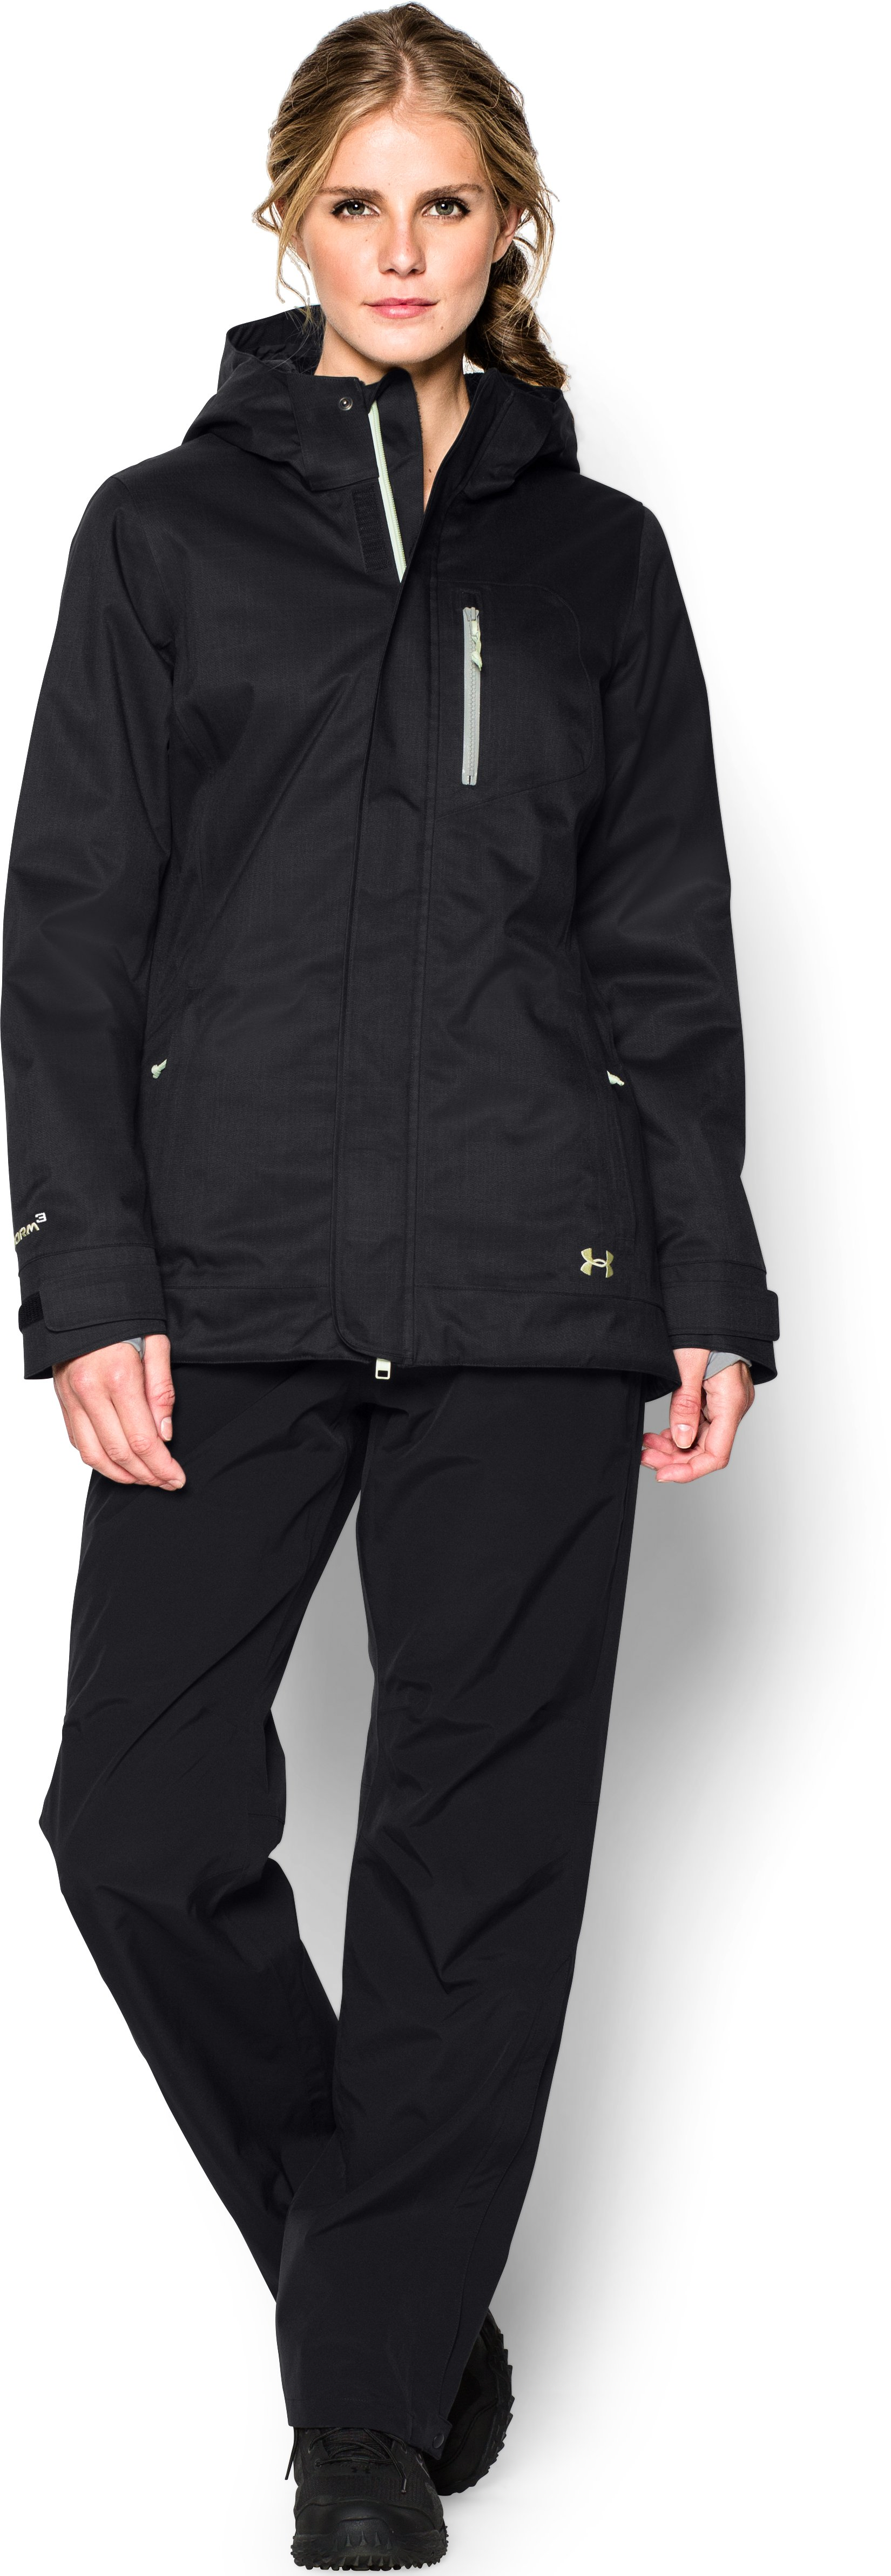 Women's UA ColdGear® Infrared Sienna 3-In-1 Jacket | Under Armour US